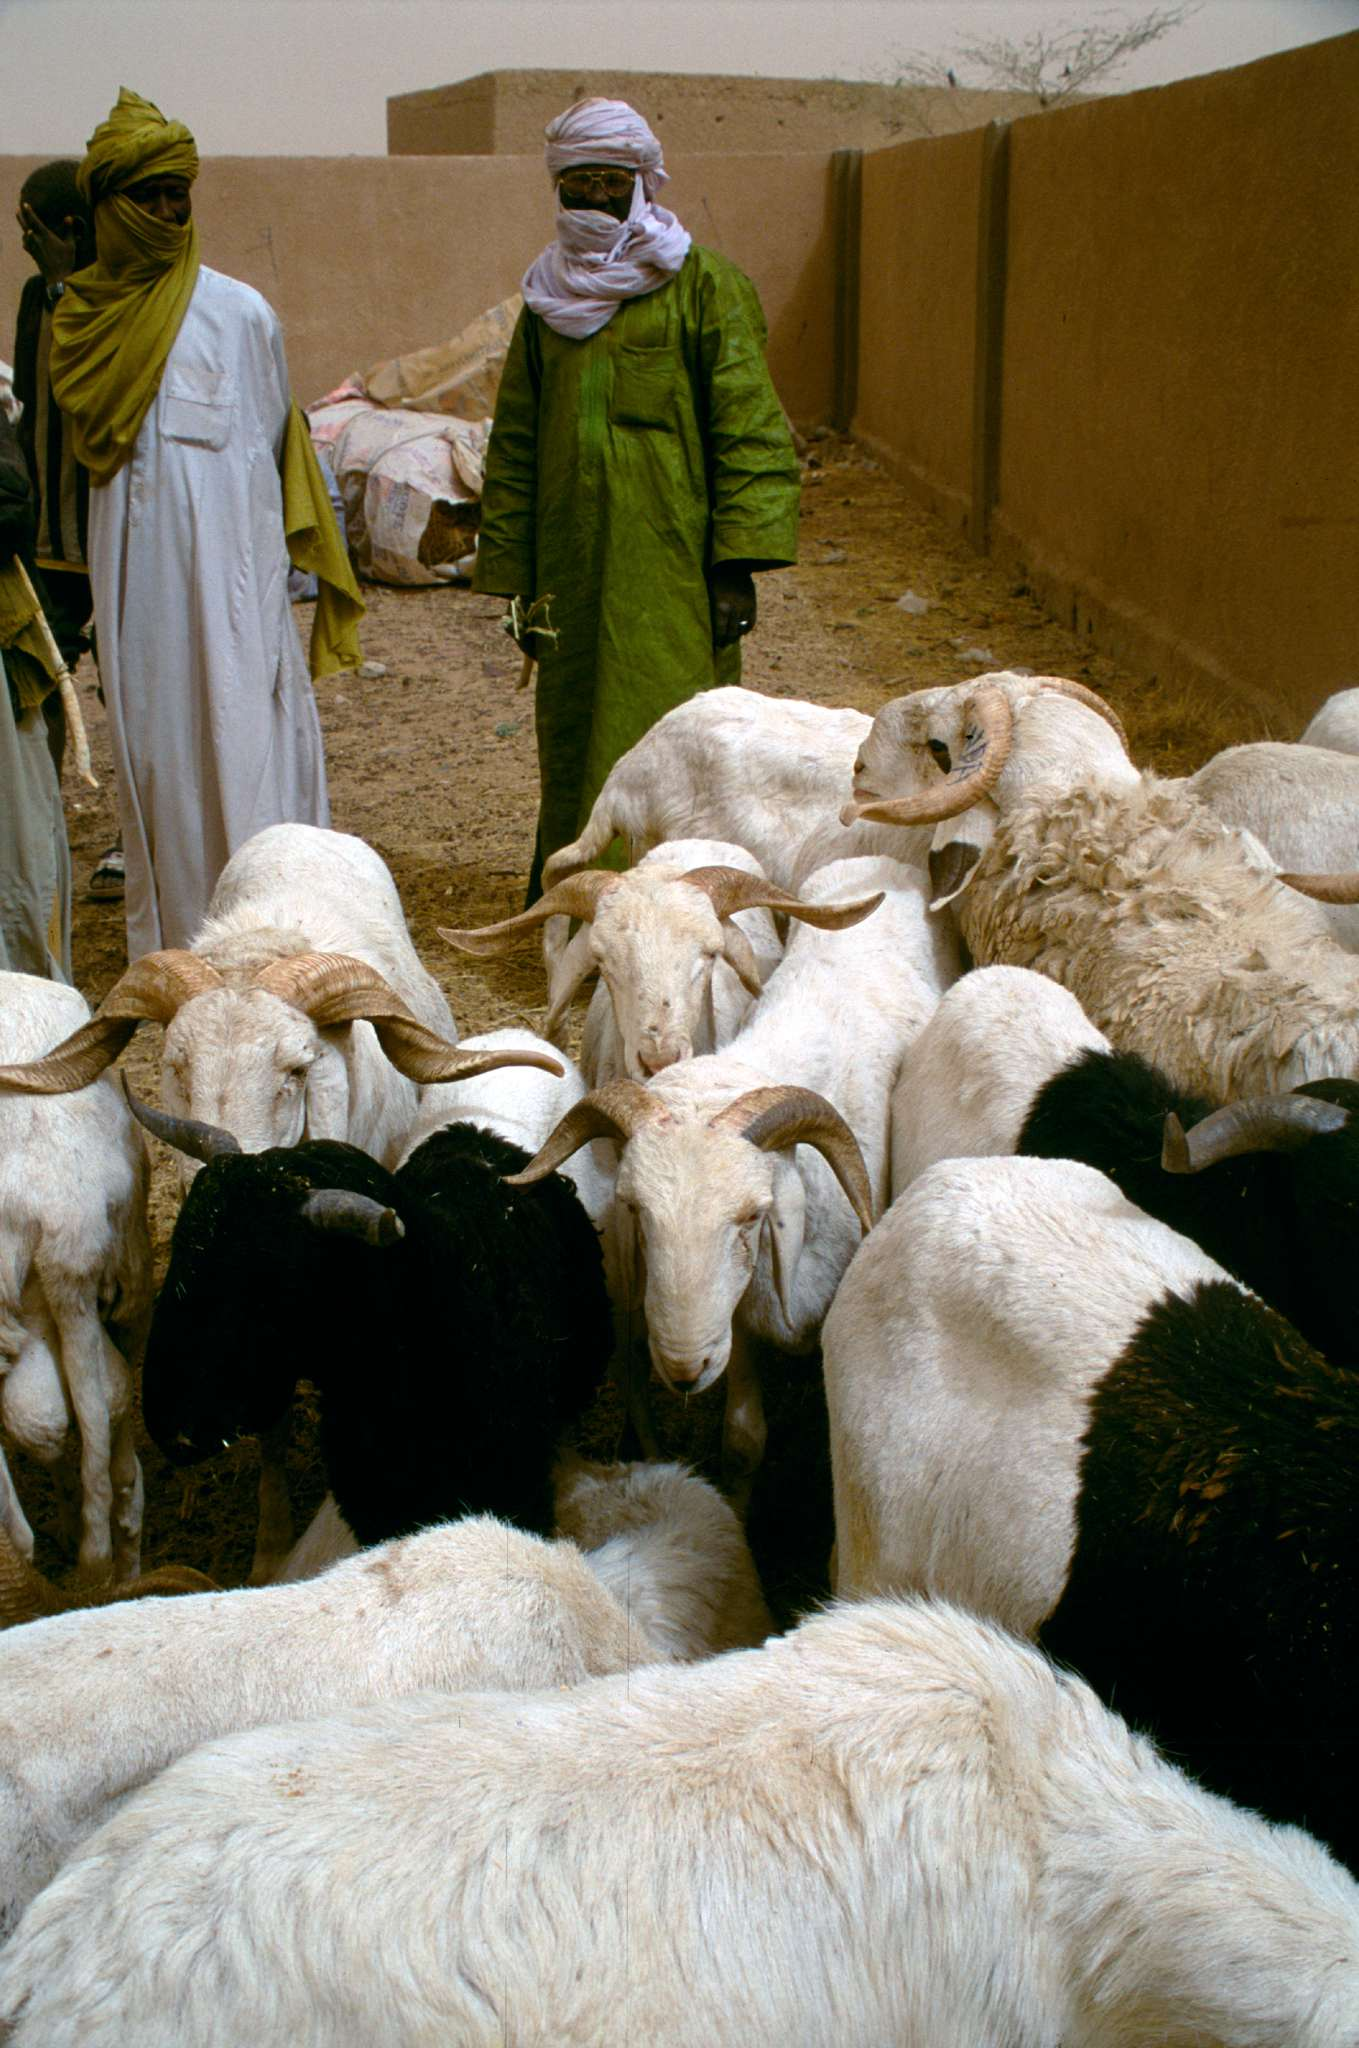 shepherds and flock of sheep in a market